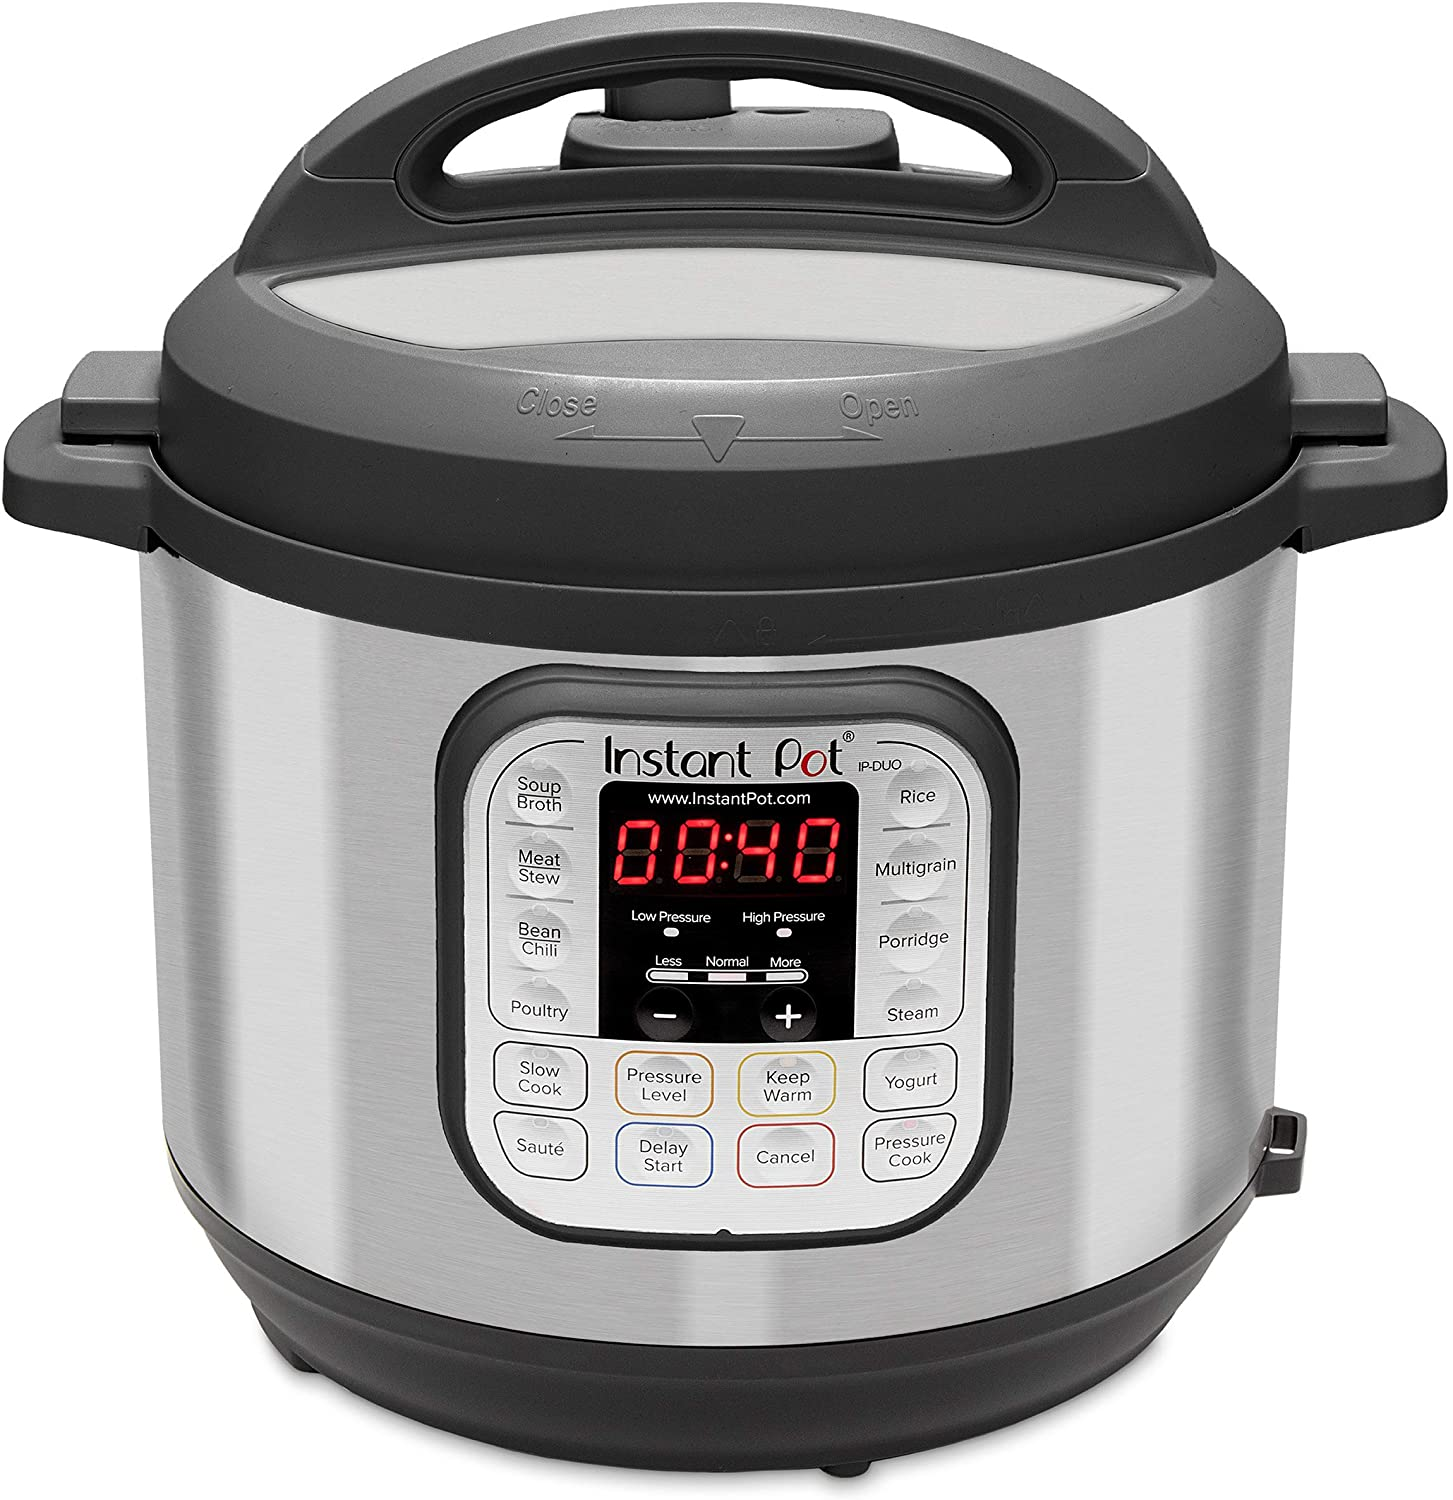 Instant Pot Duo appliance